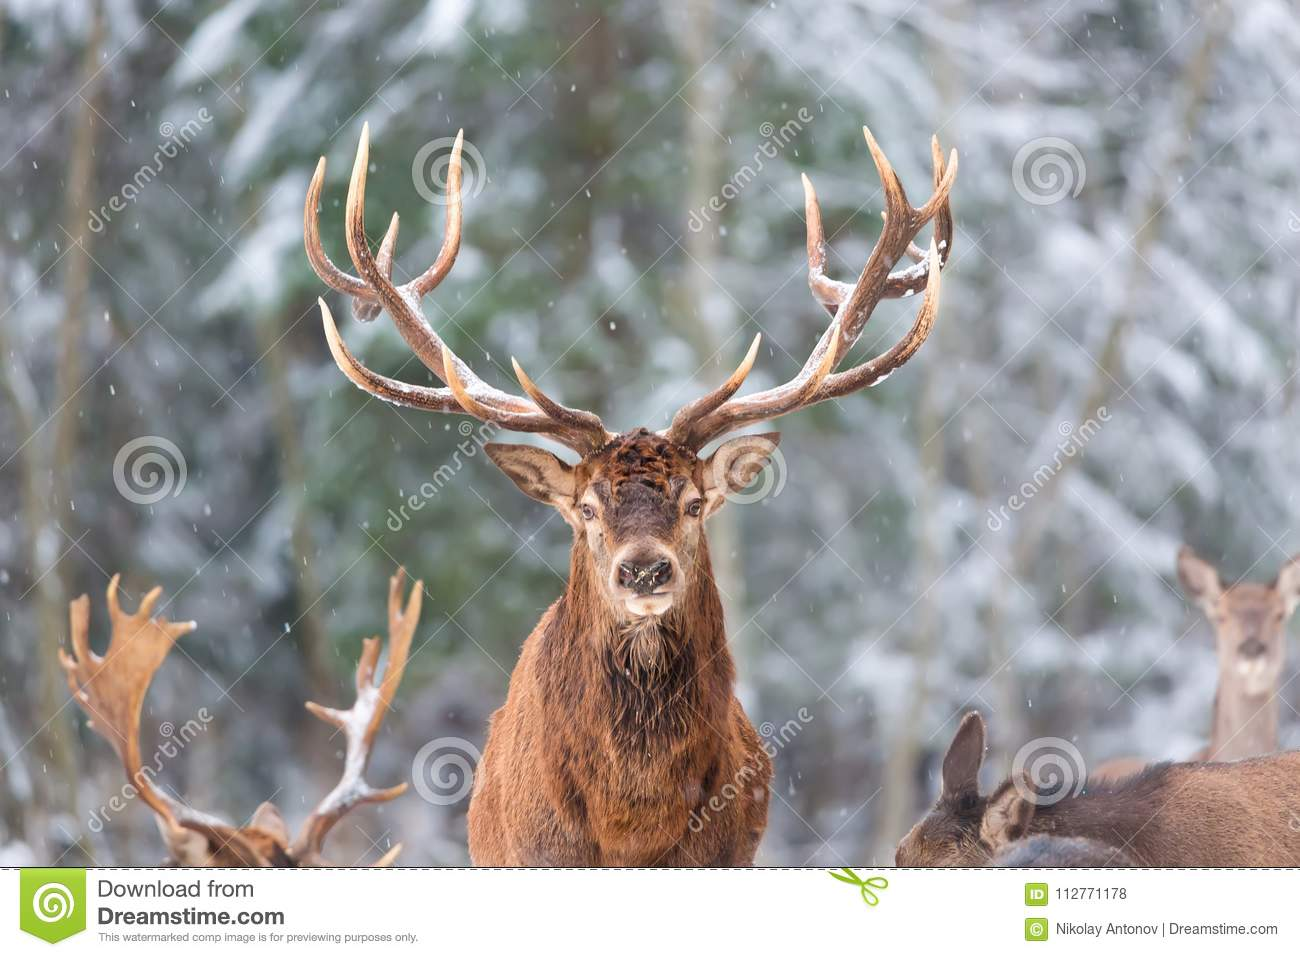 Winter wildlife landscape with noble deers Cervus Elaphus. Deer with large Horns with snow on the foreground and looking at camera